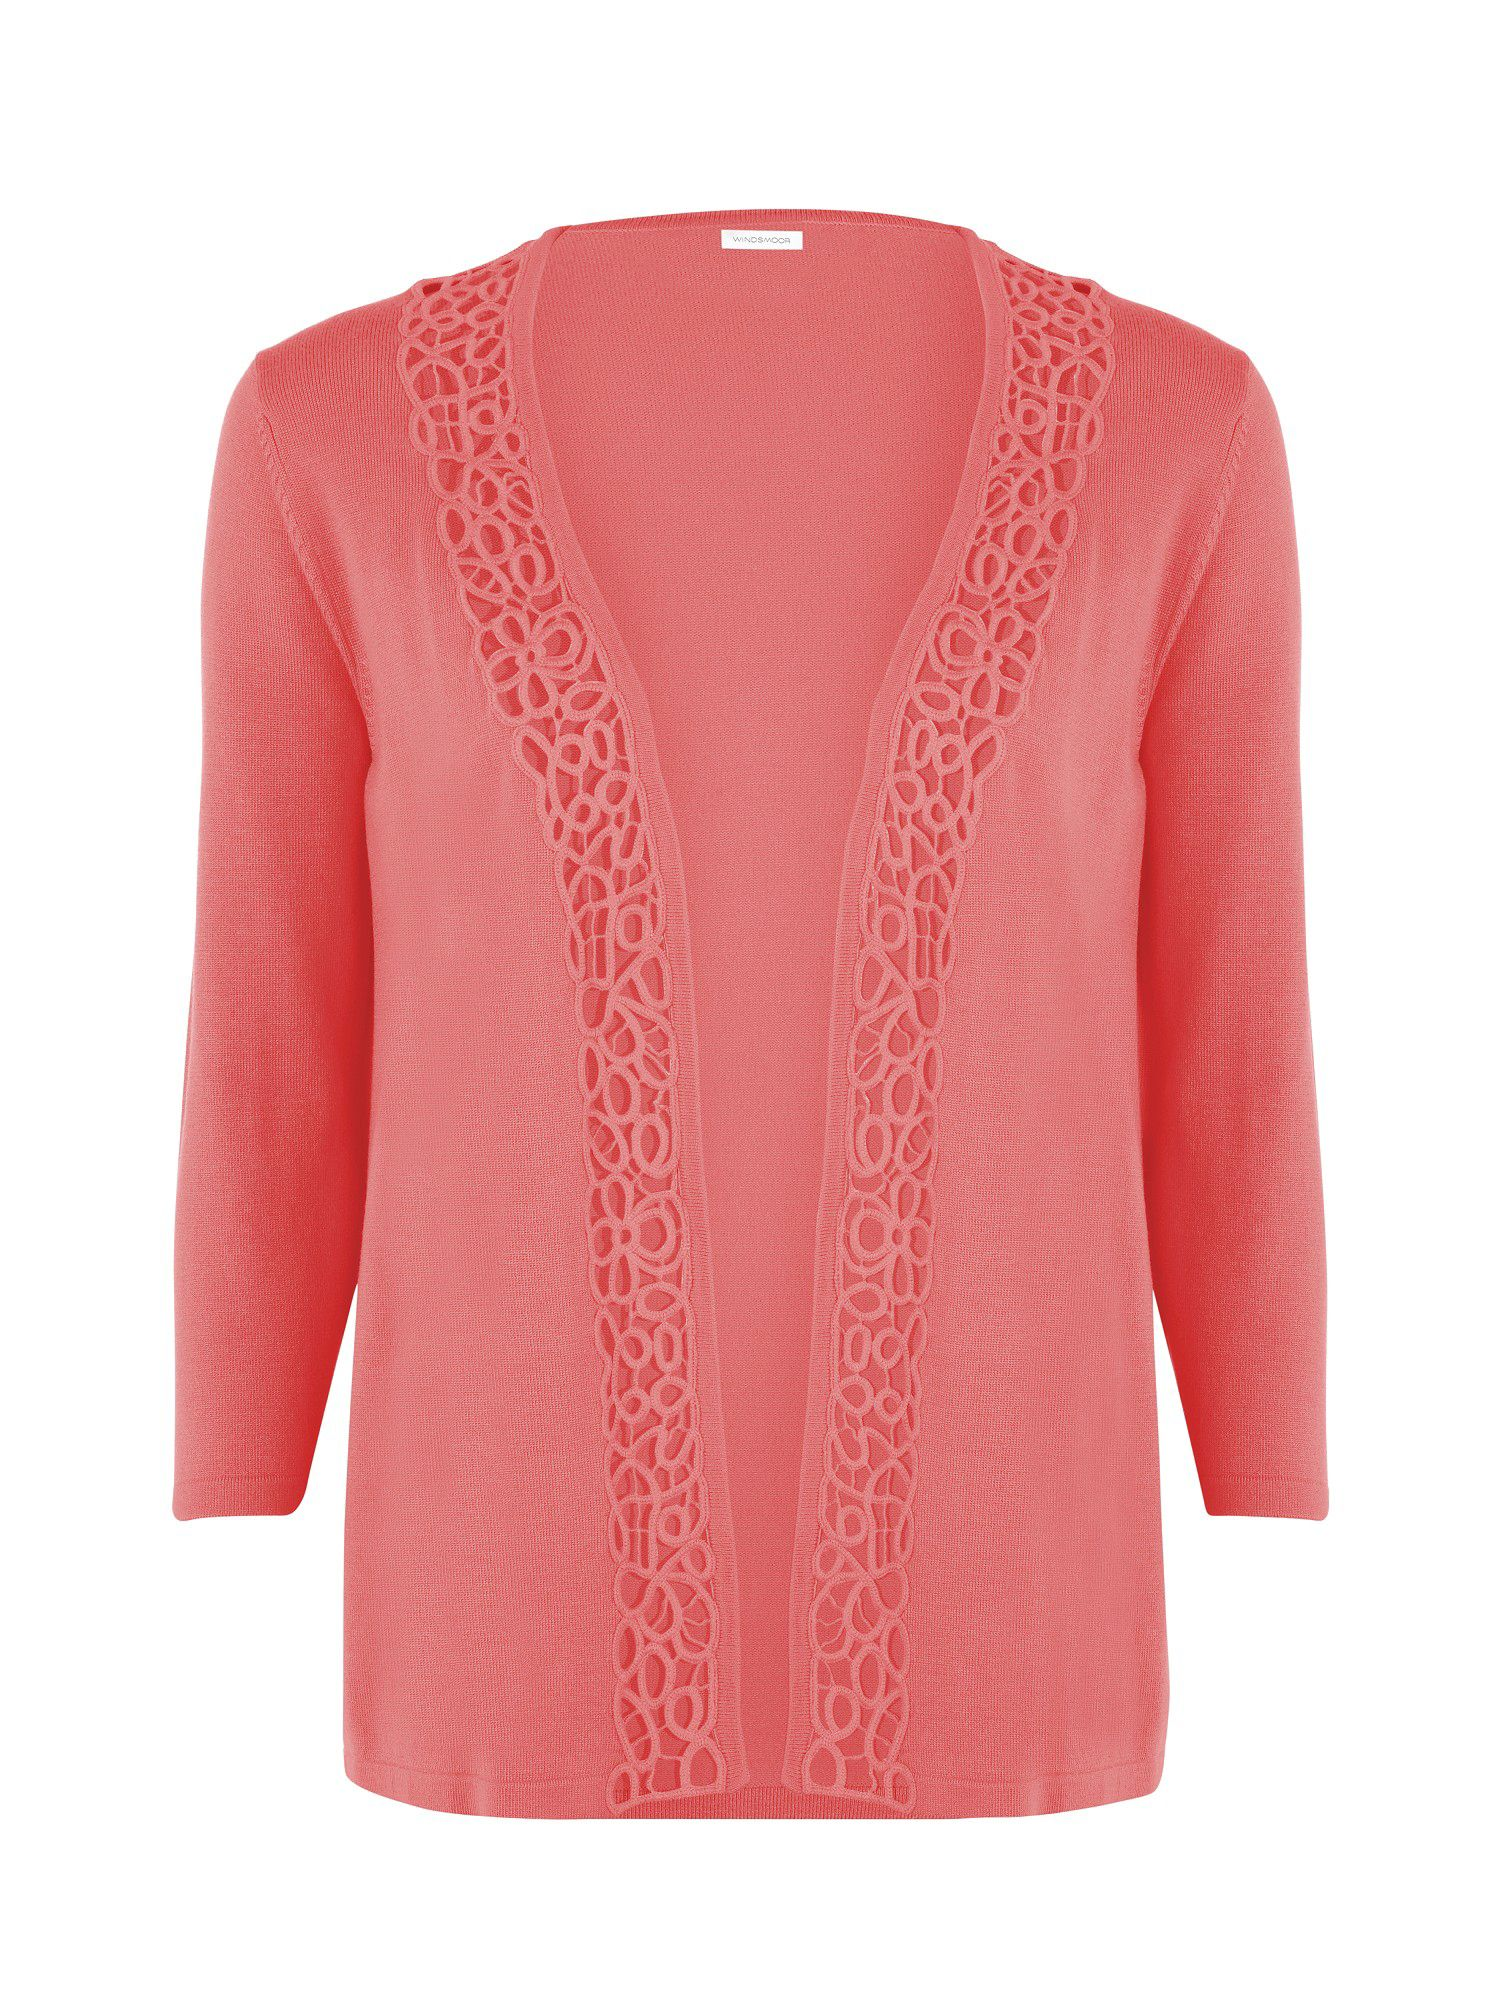 Coral lace trim cardigan